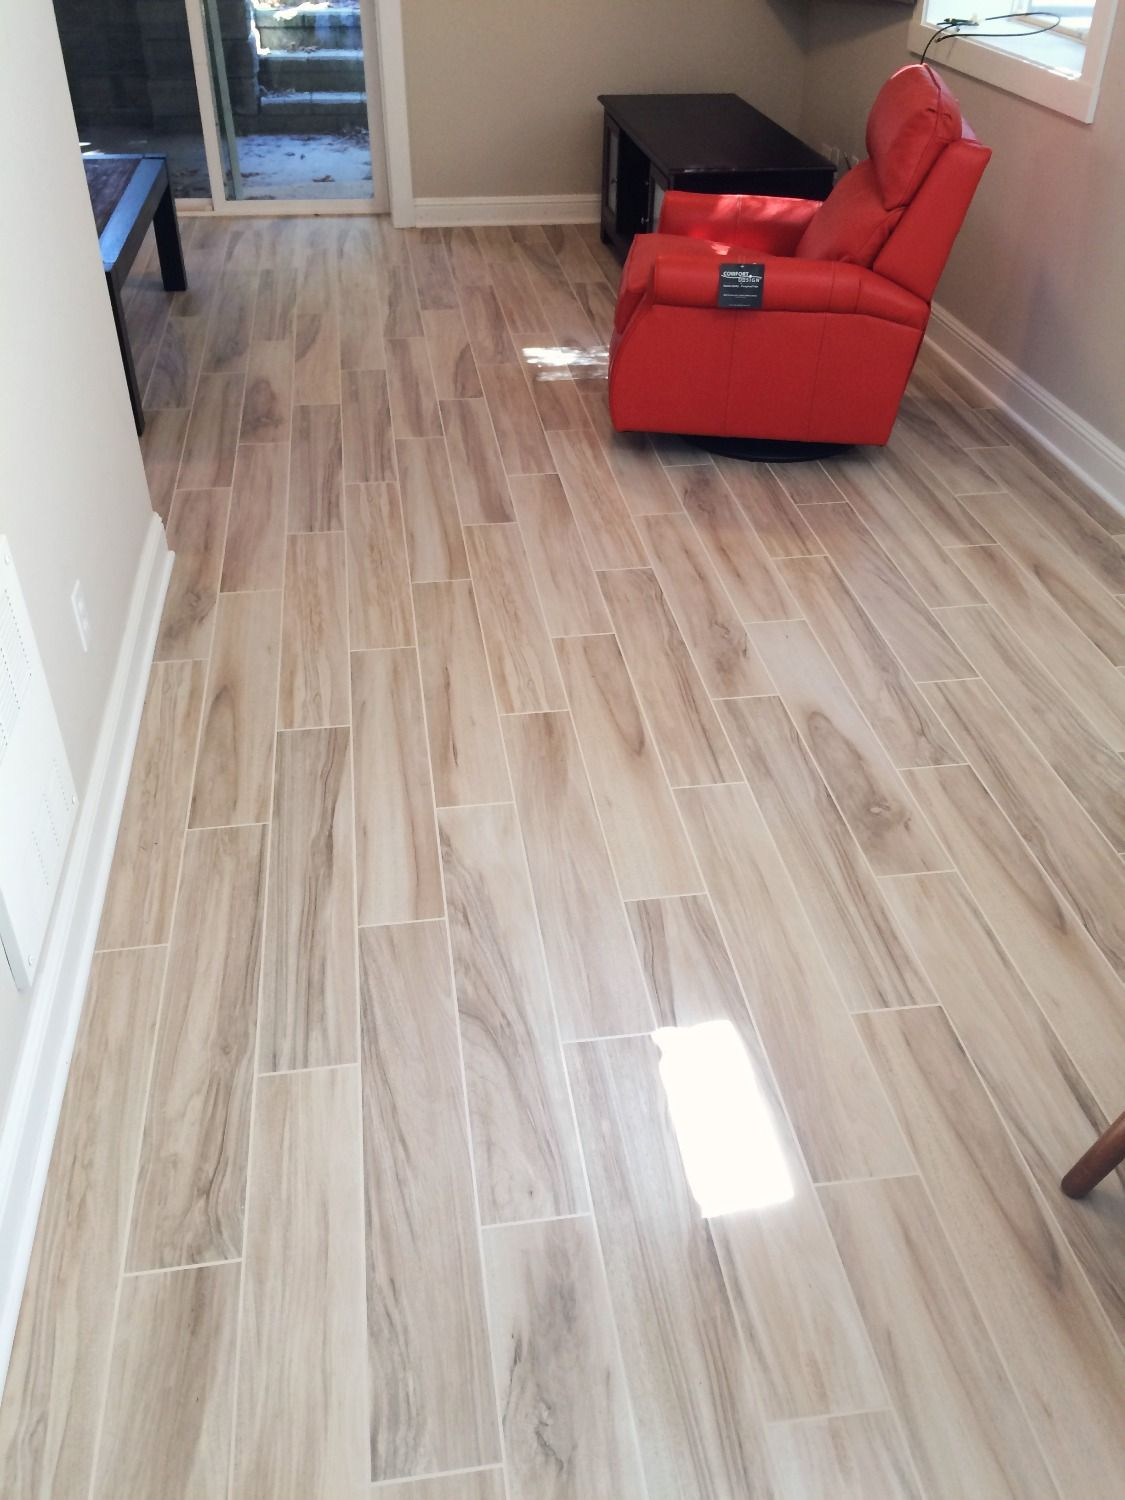 Wood Grain Porcelain Tile Installed In A Basement With Images